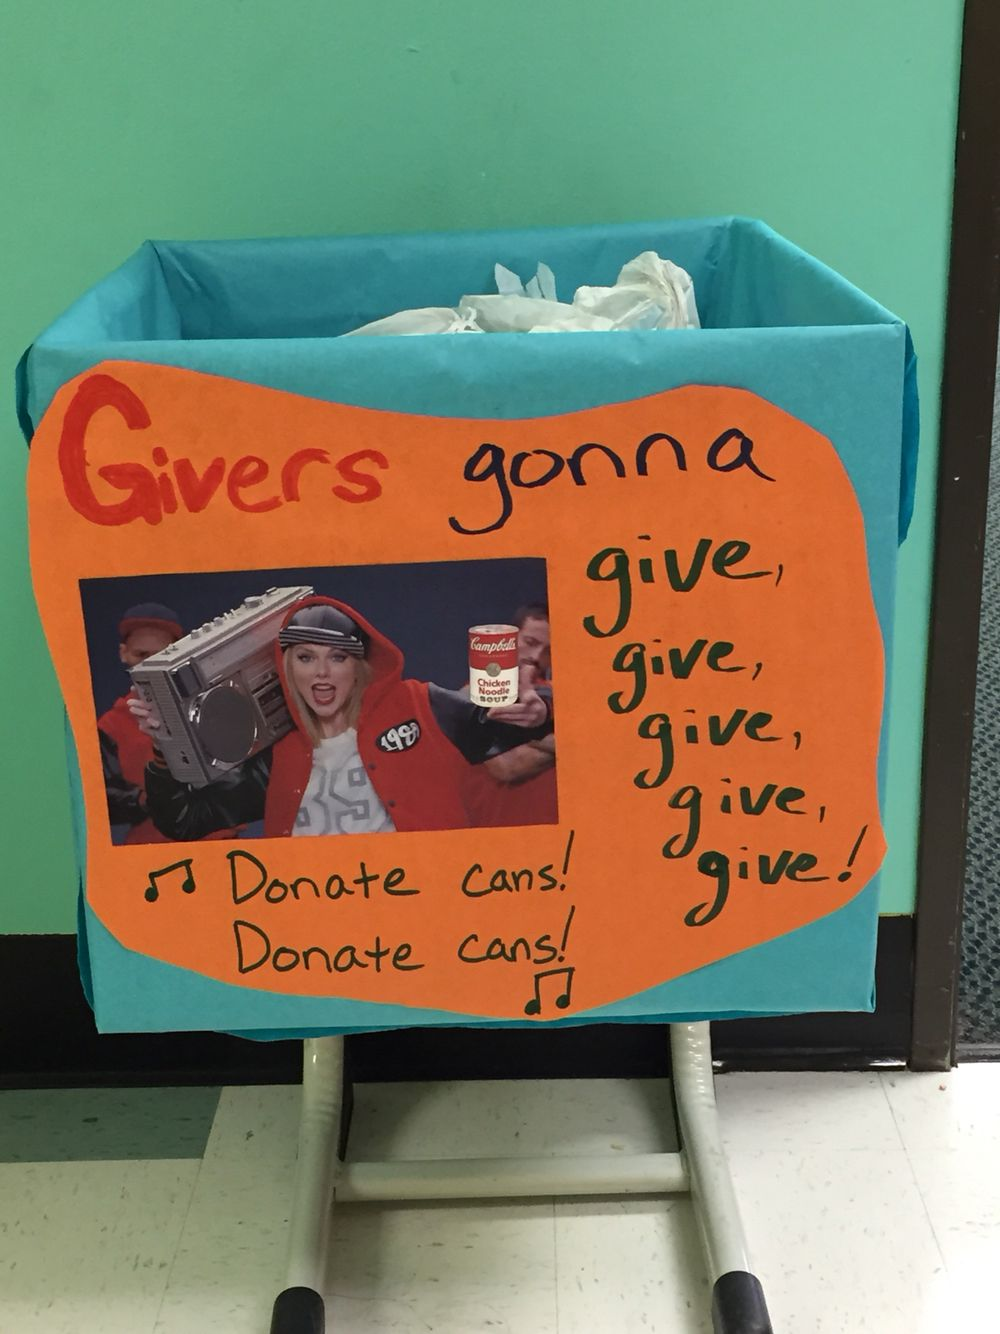 Mr. B's submission for the school's food drive box